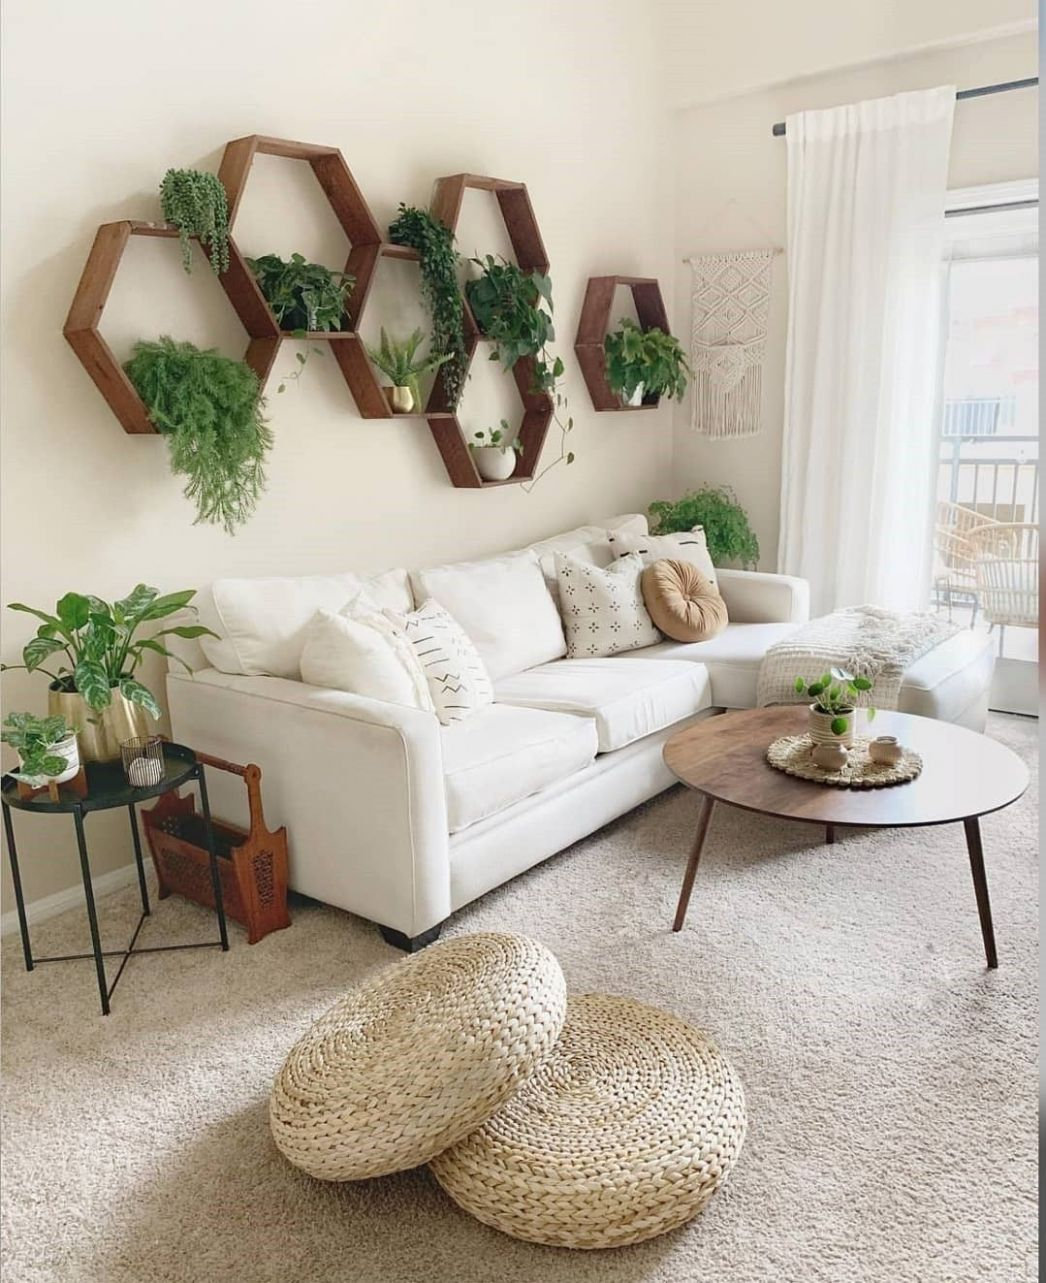 Boho Chic Home Decor Plans and Ideas | Wall decor living room ...